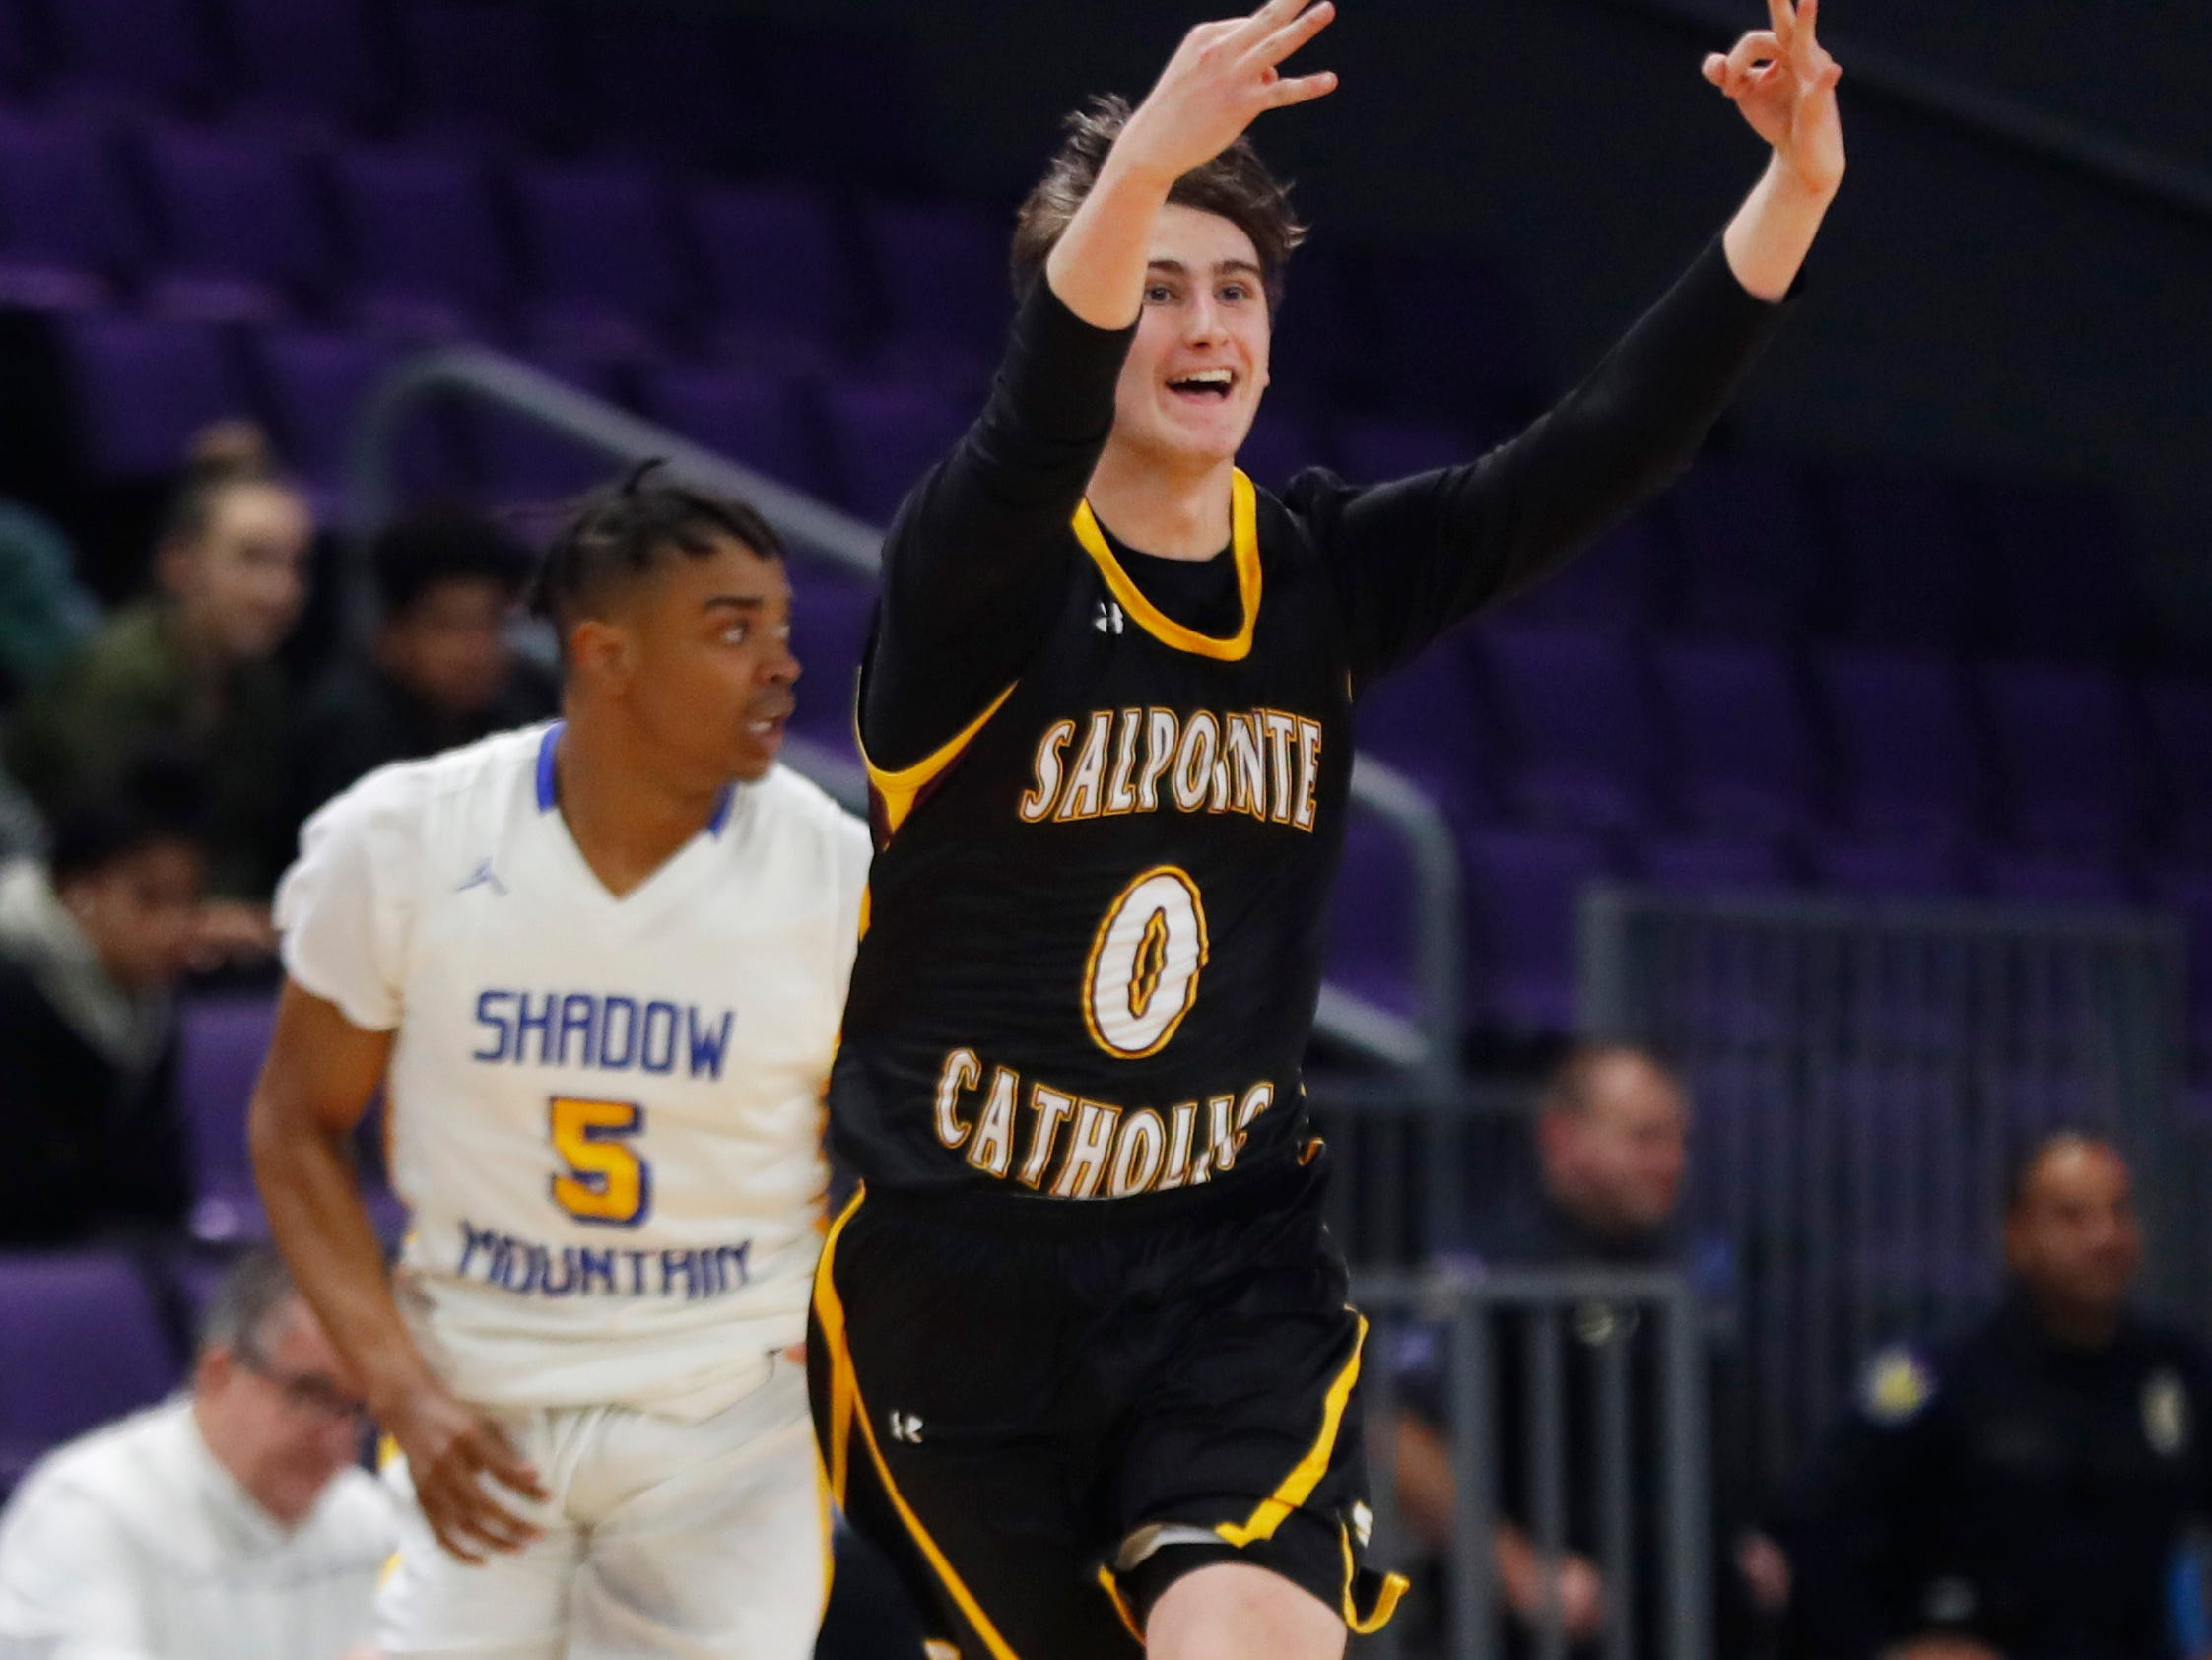 Salpointe Catholic's Luc Rosenblatt (0) celebrates hitting a three over Shadow Mountain's Christian Allen (5) during first half of the 4A boys basketball semifinal game at Grand Canyon University Arena in Phoenix, Ariz. on February 22, 2019.